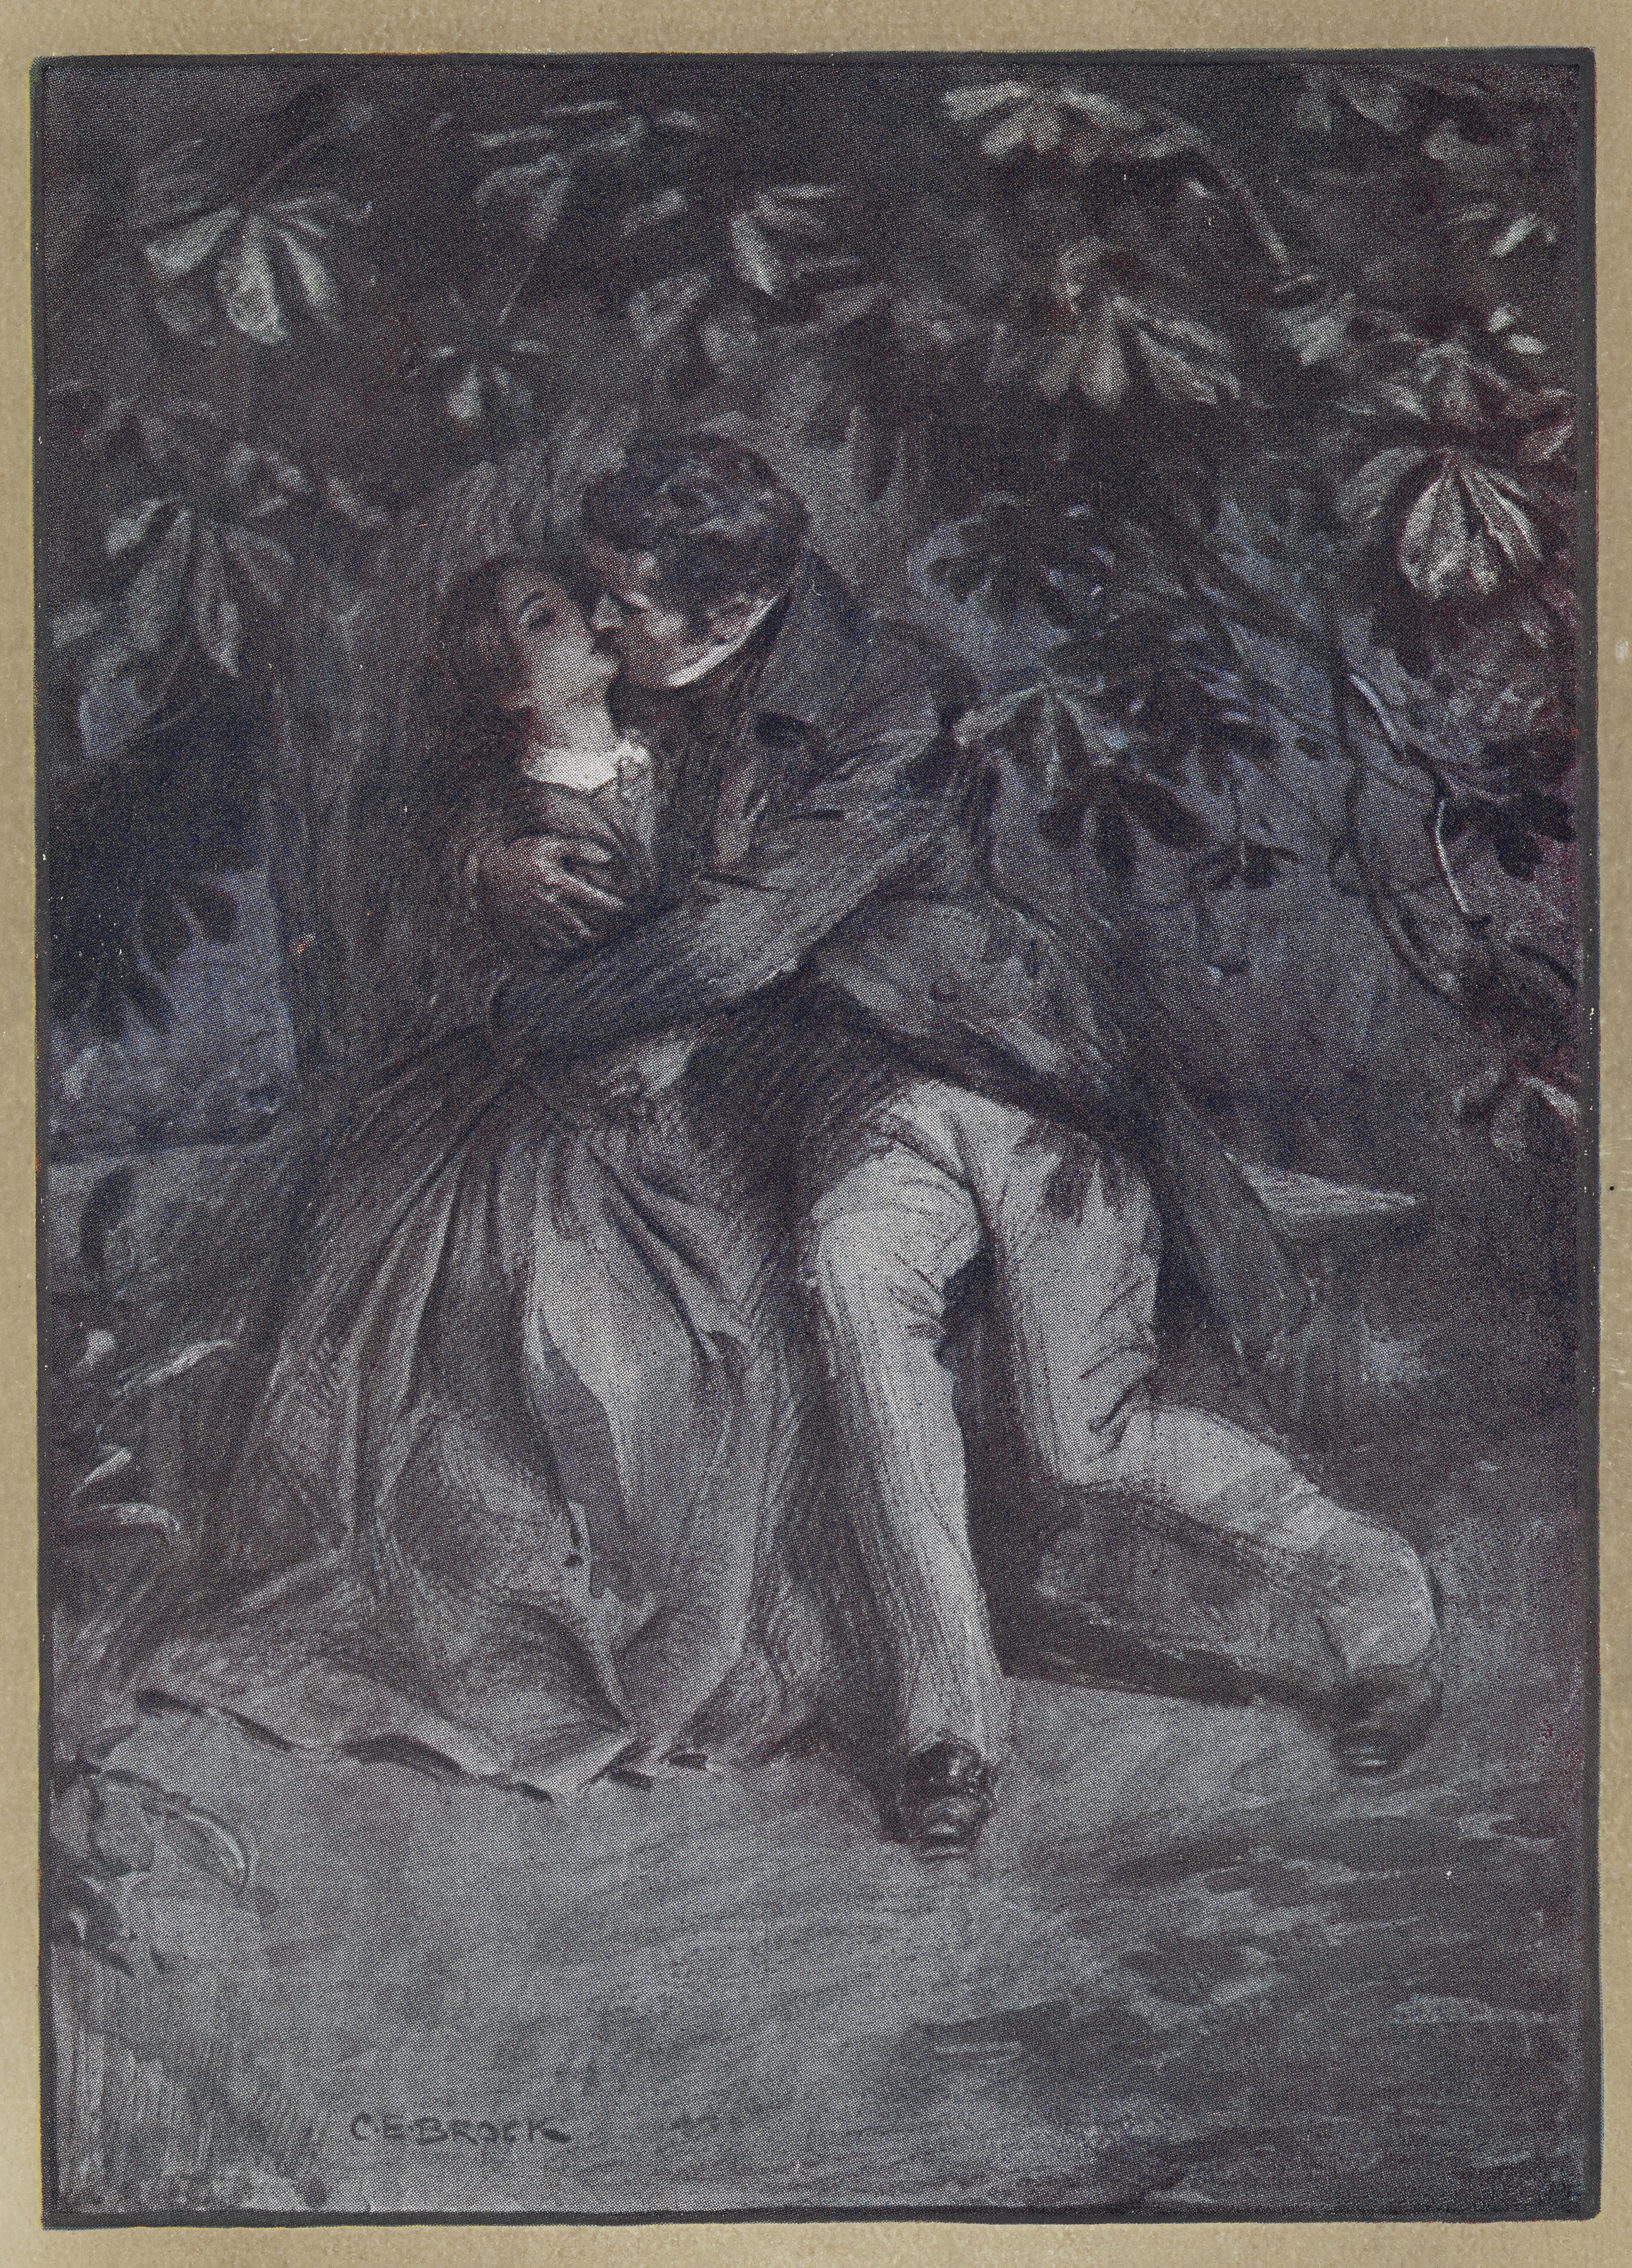 Painting of Jane Eyre embracing Mr Rochester from 1911